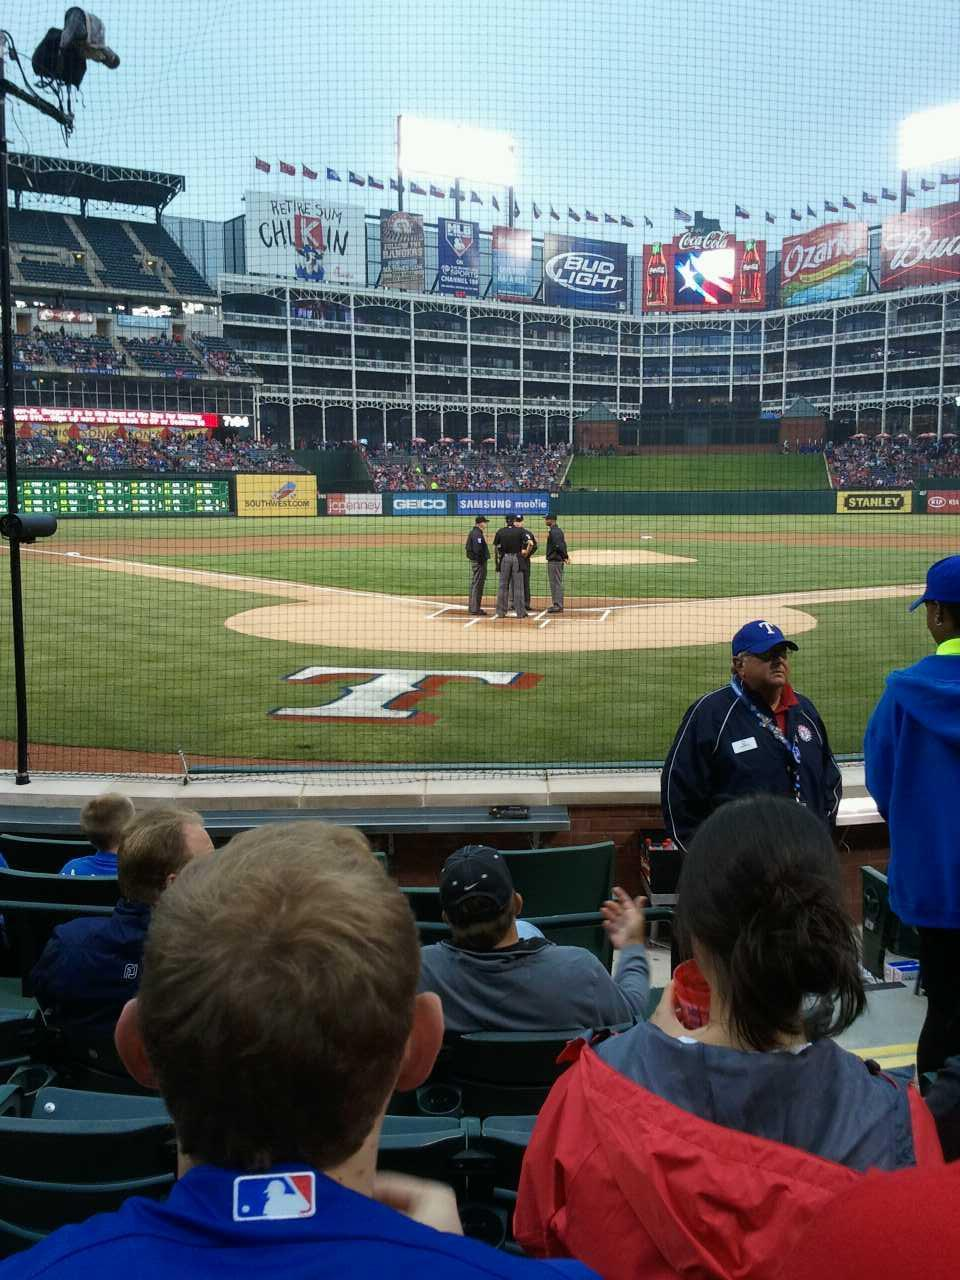 Globe Life Park in Arlington Section 25 Row 5 Seat 17